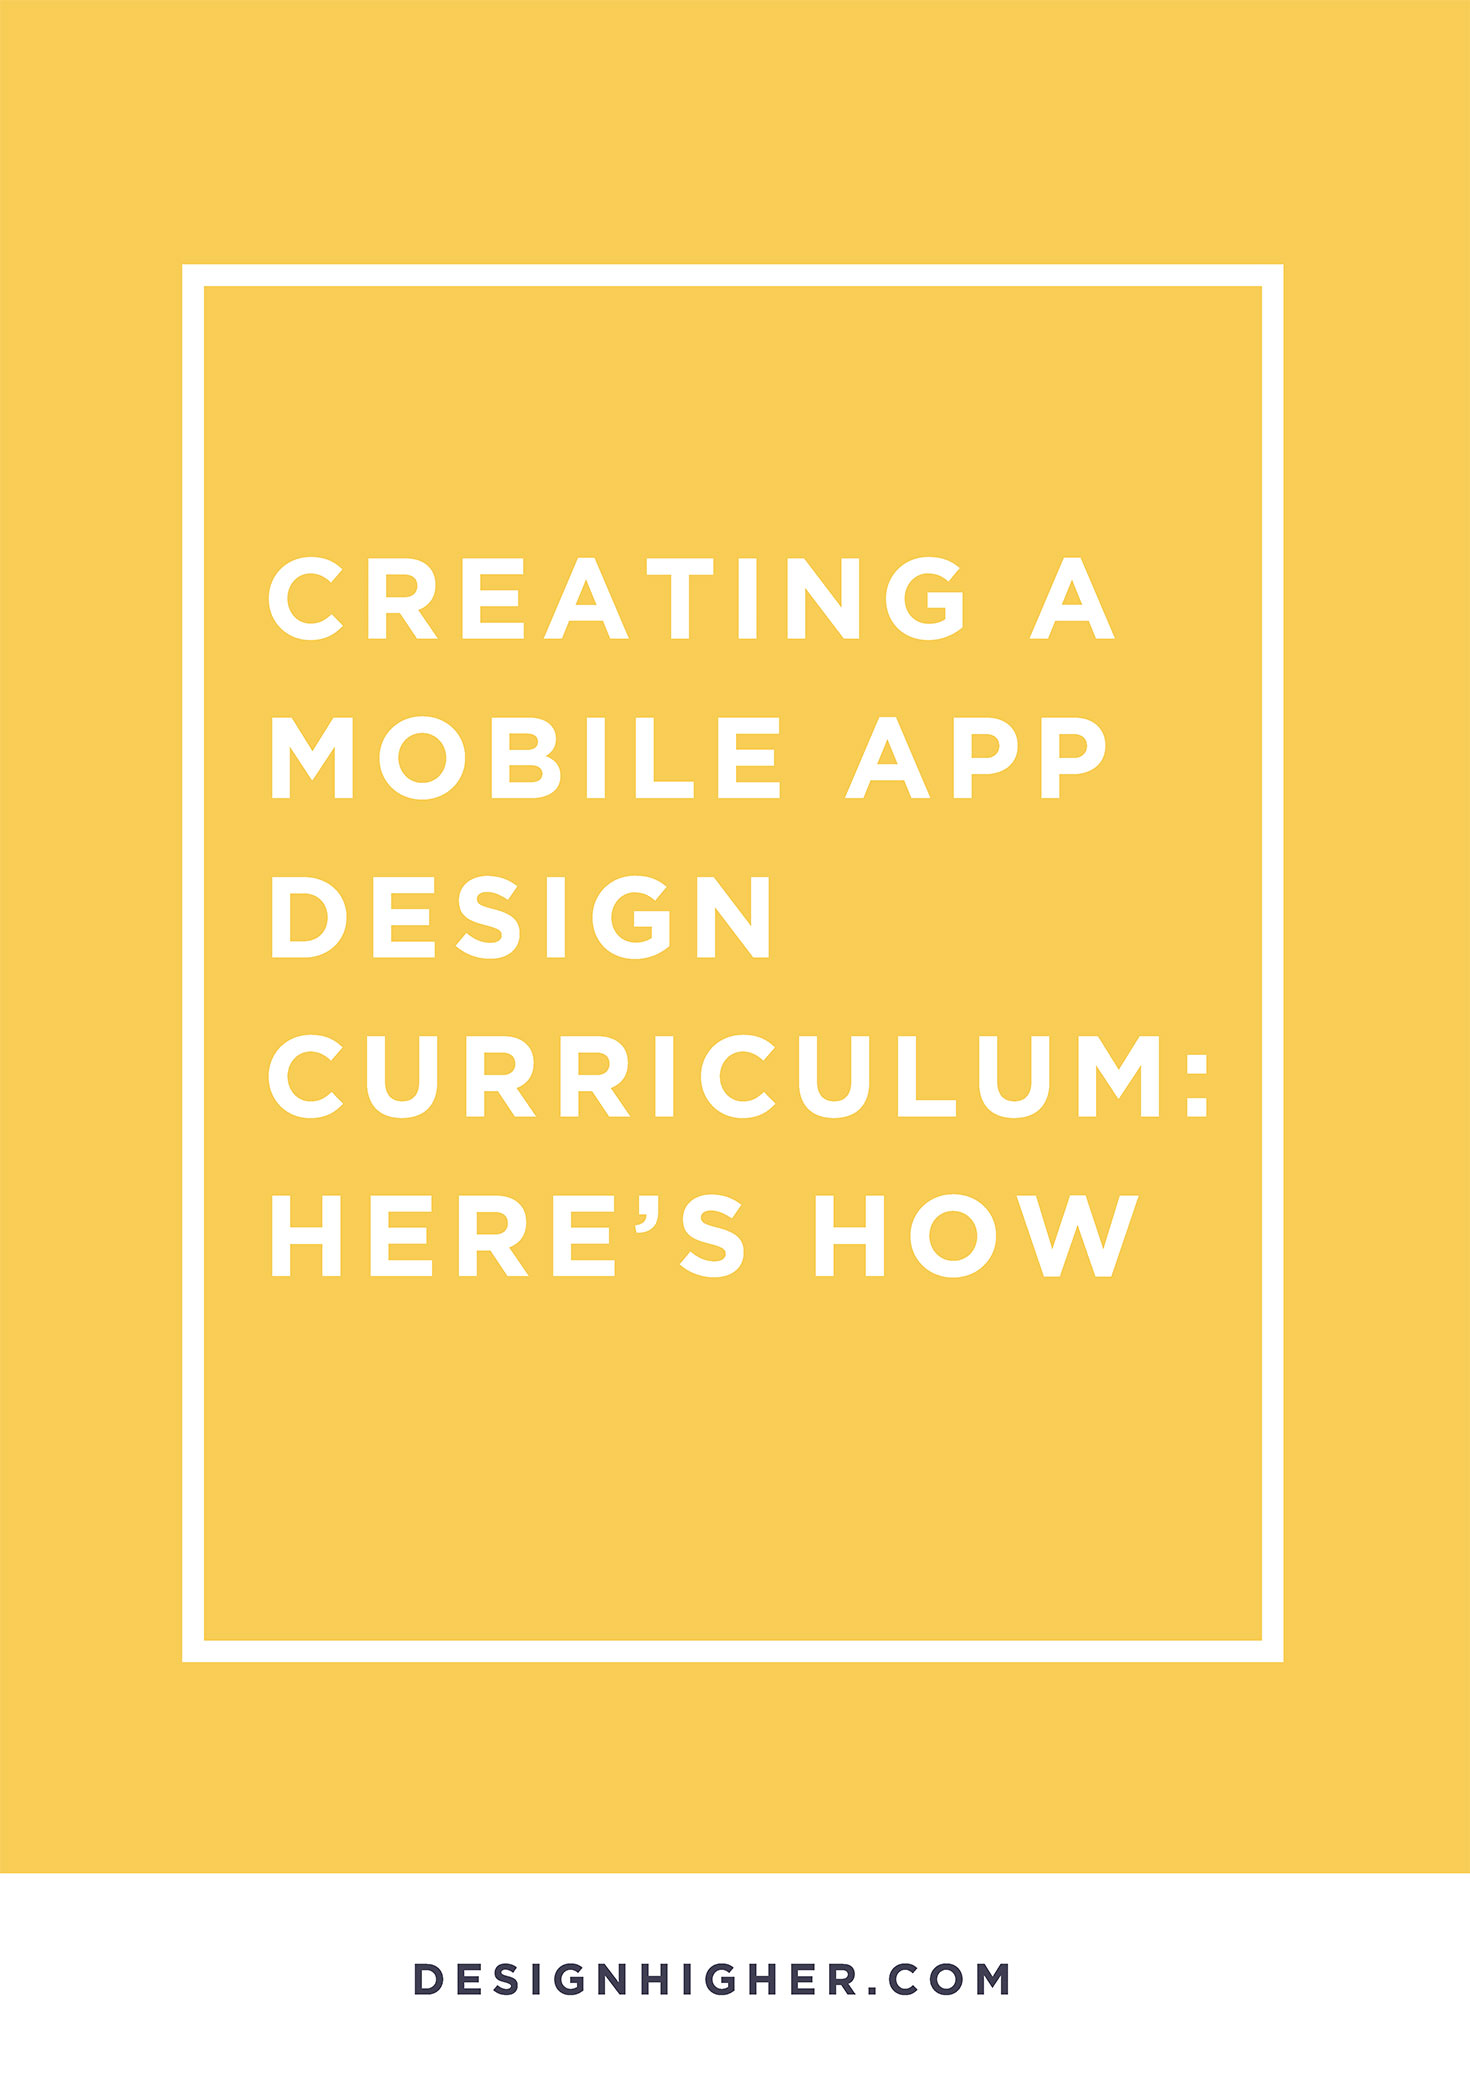 Create mobile app design curriculum